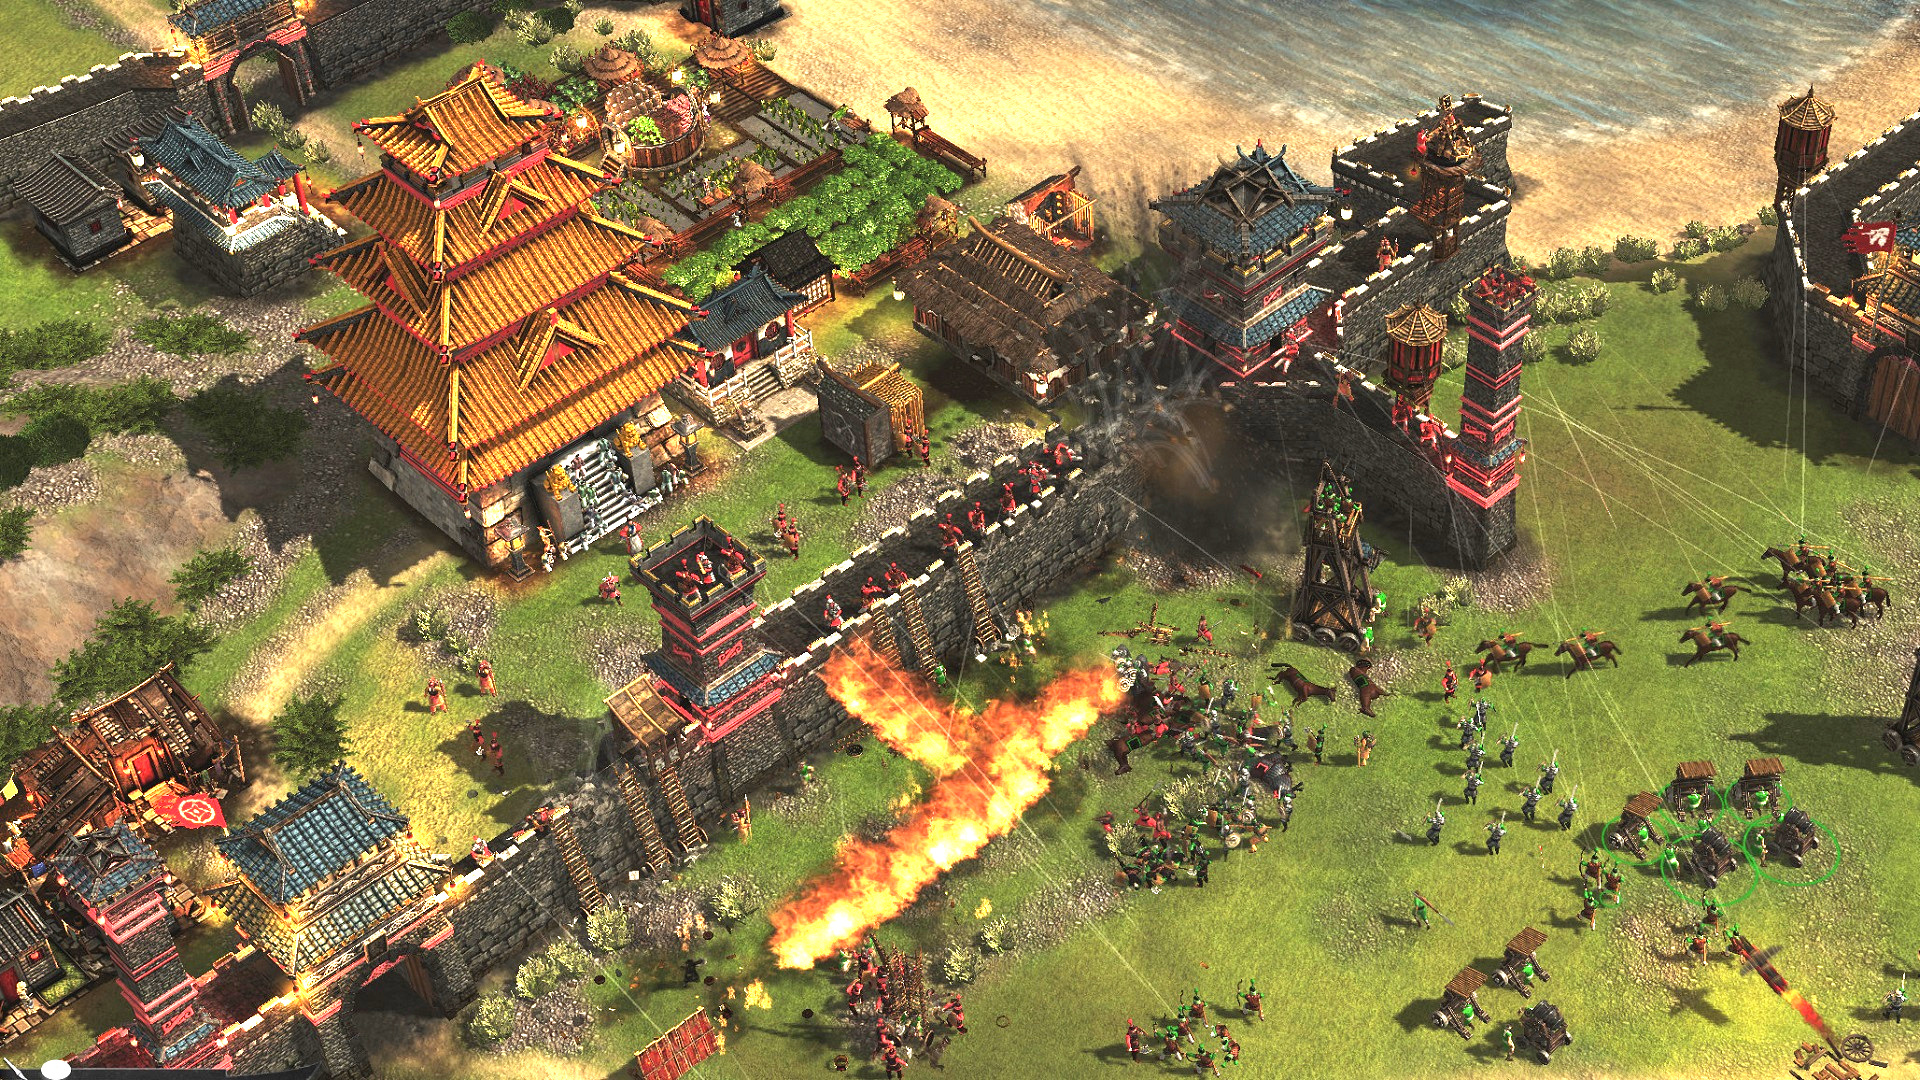 The best RTS games on PC in 2021